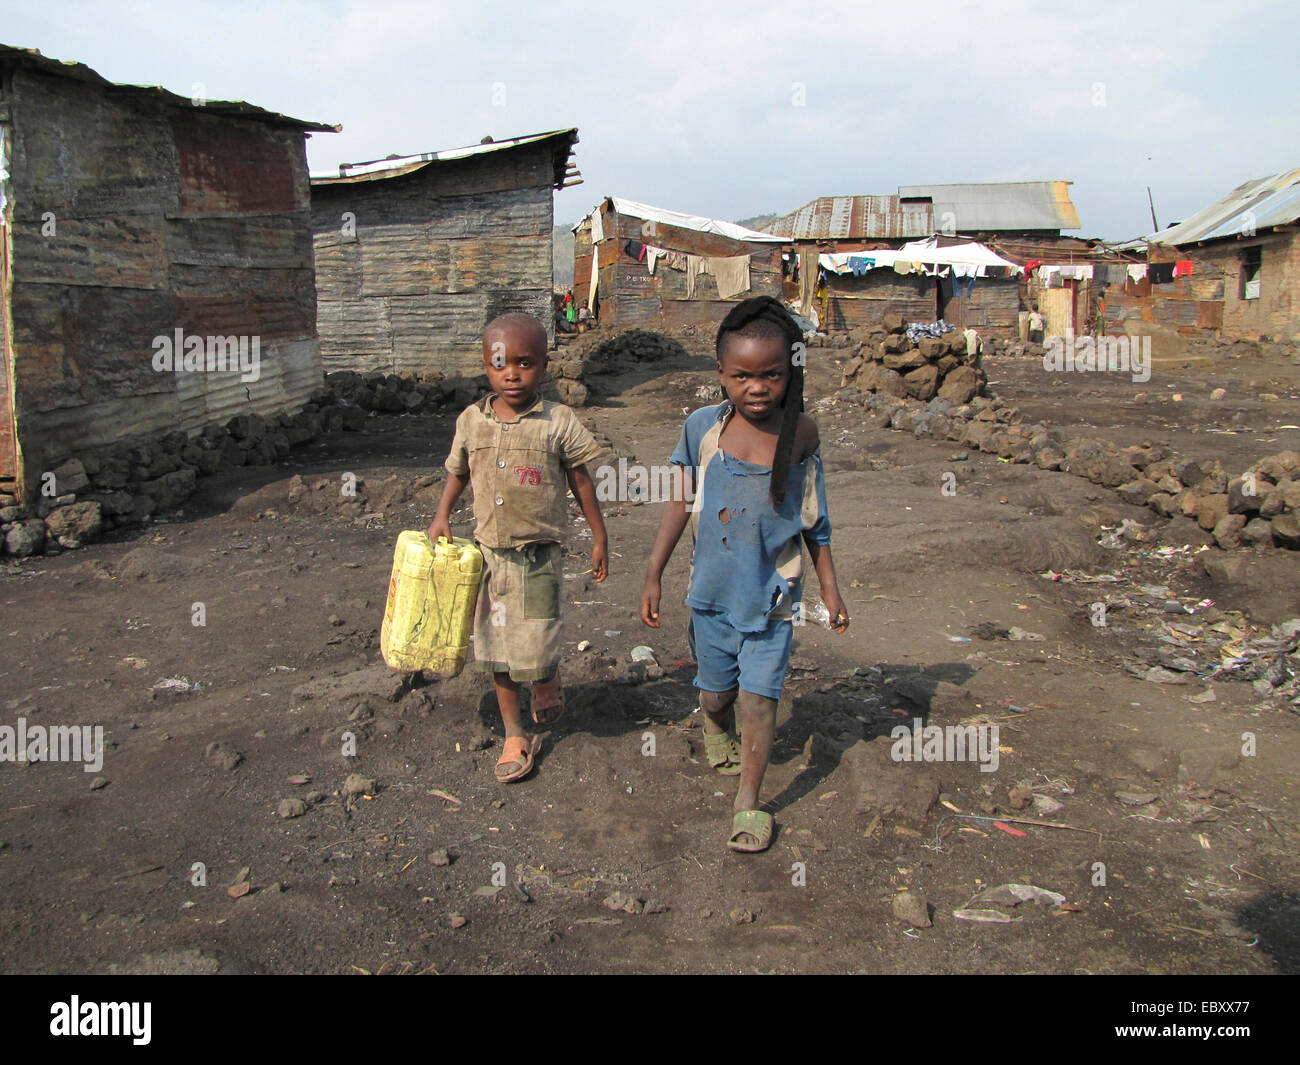 children fetching water with canisters in a poor part of the city of Goma, being called the 'burned quarter' - Stock Image